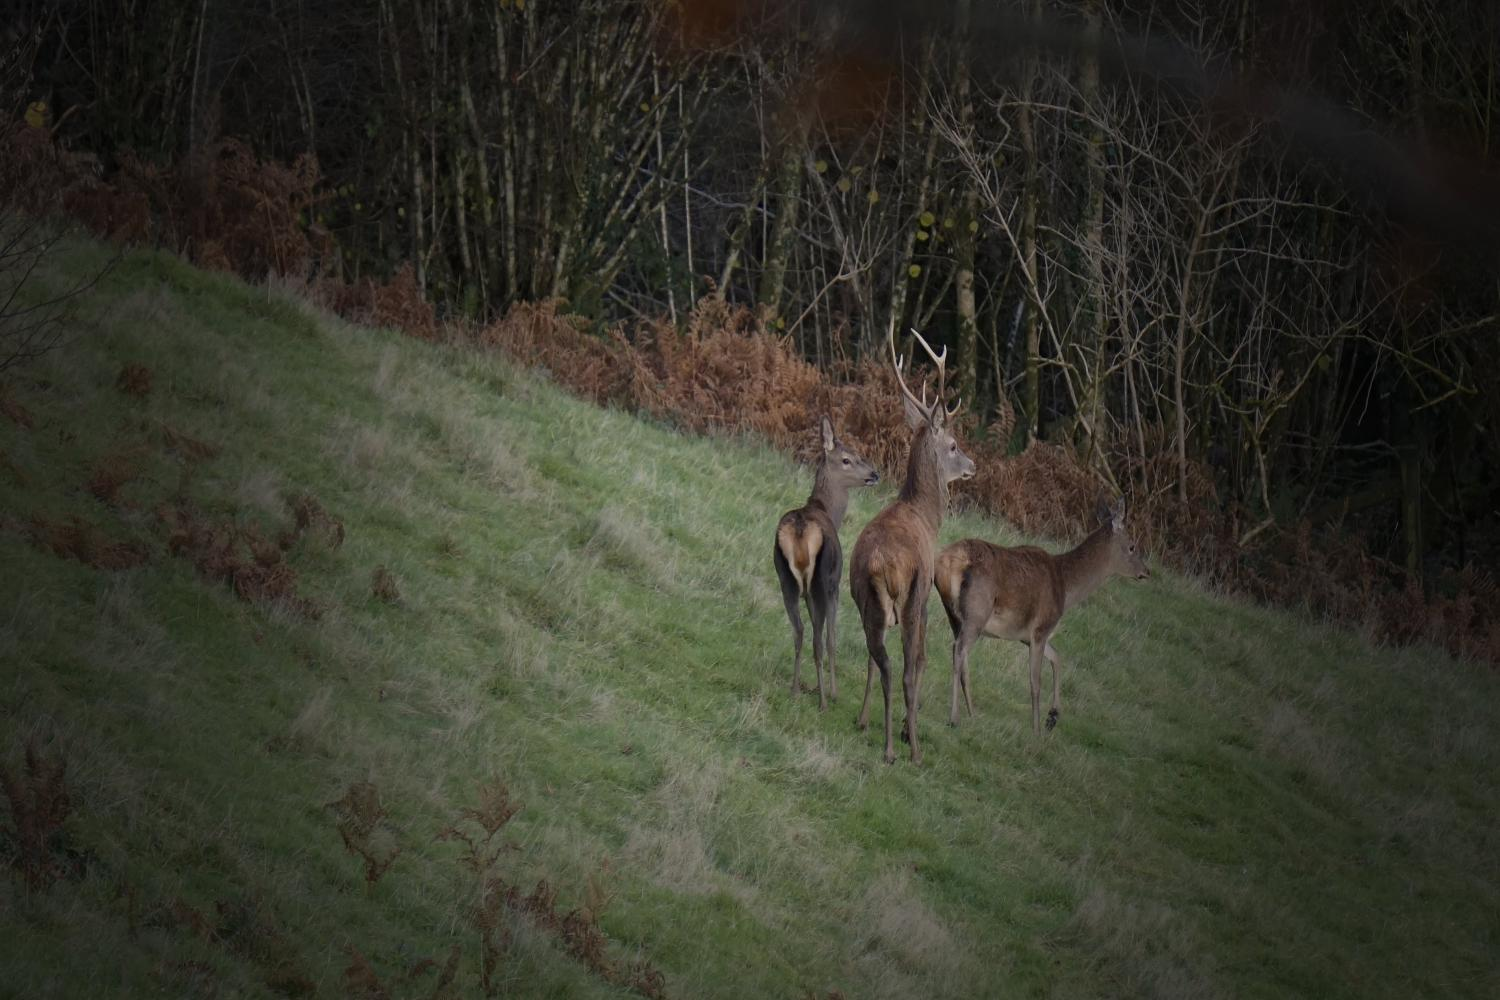 Deer spotting in the forest